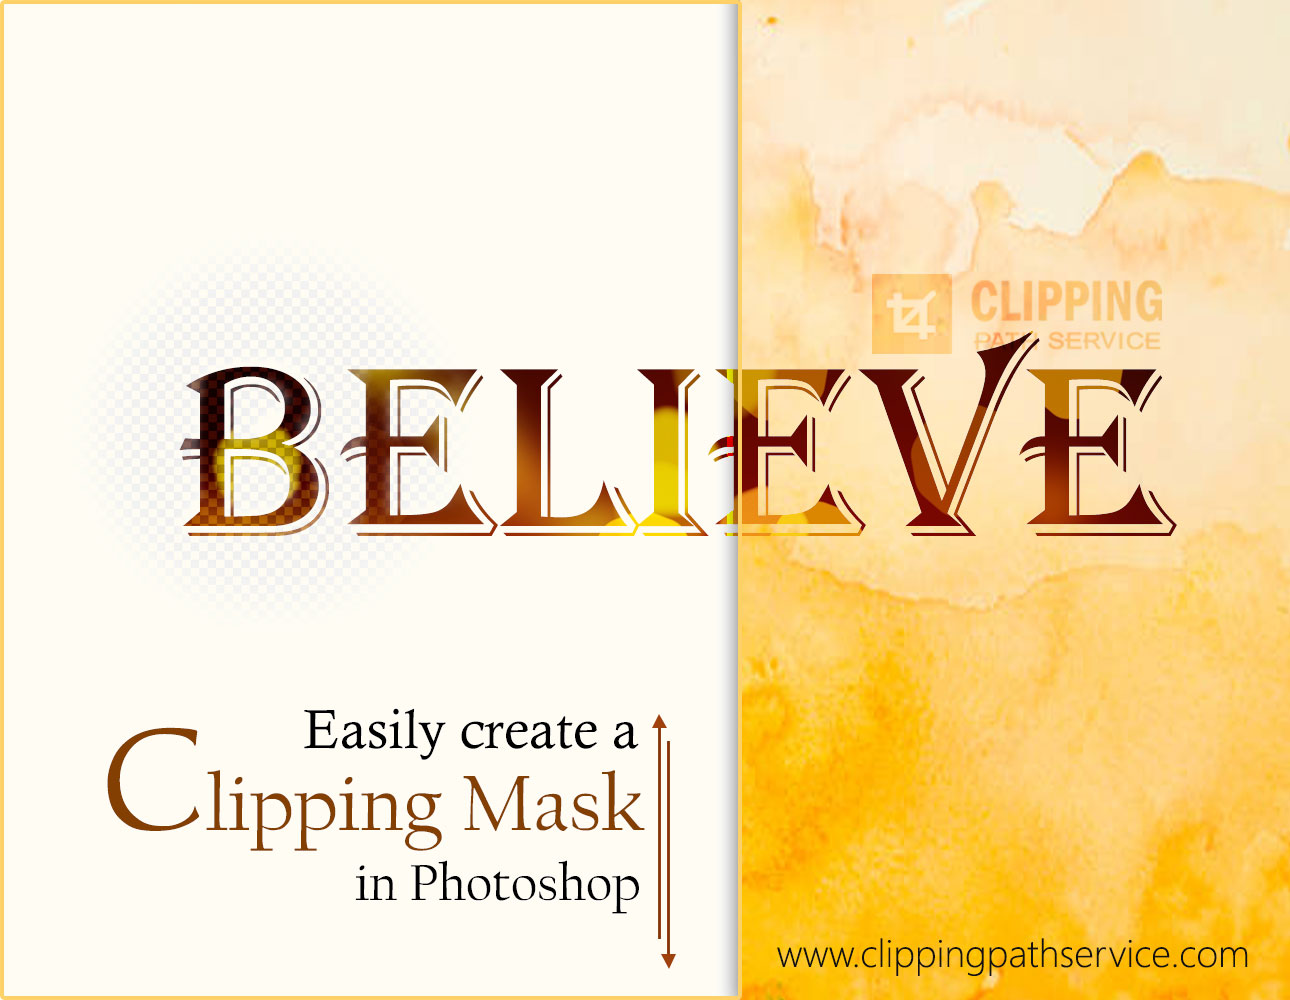 Easily create Clipping Mask in Photoshop